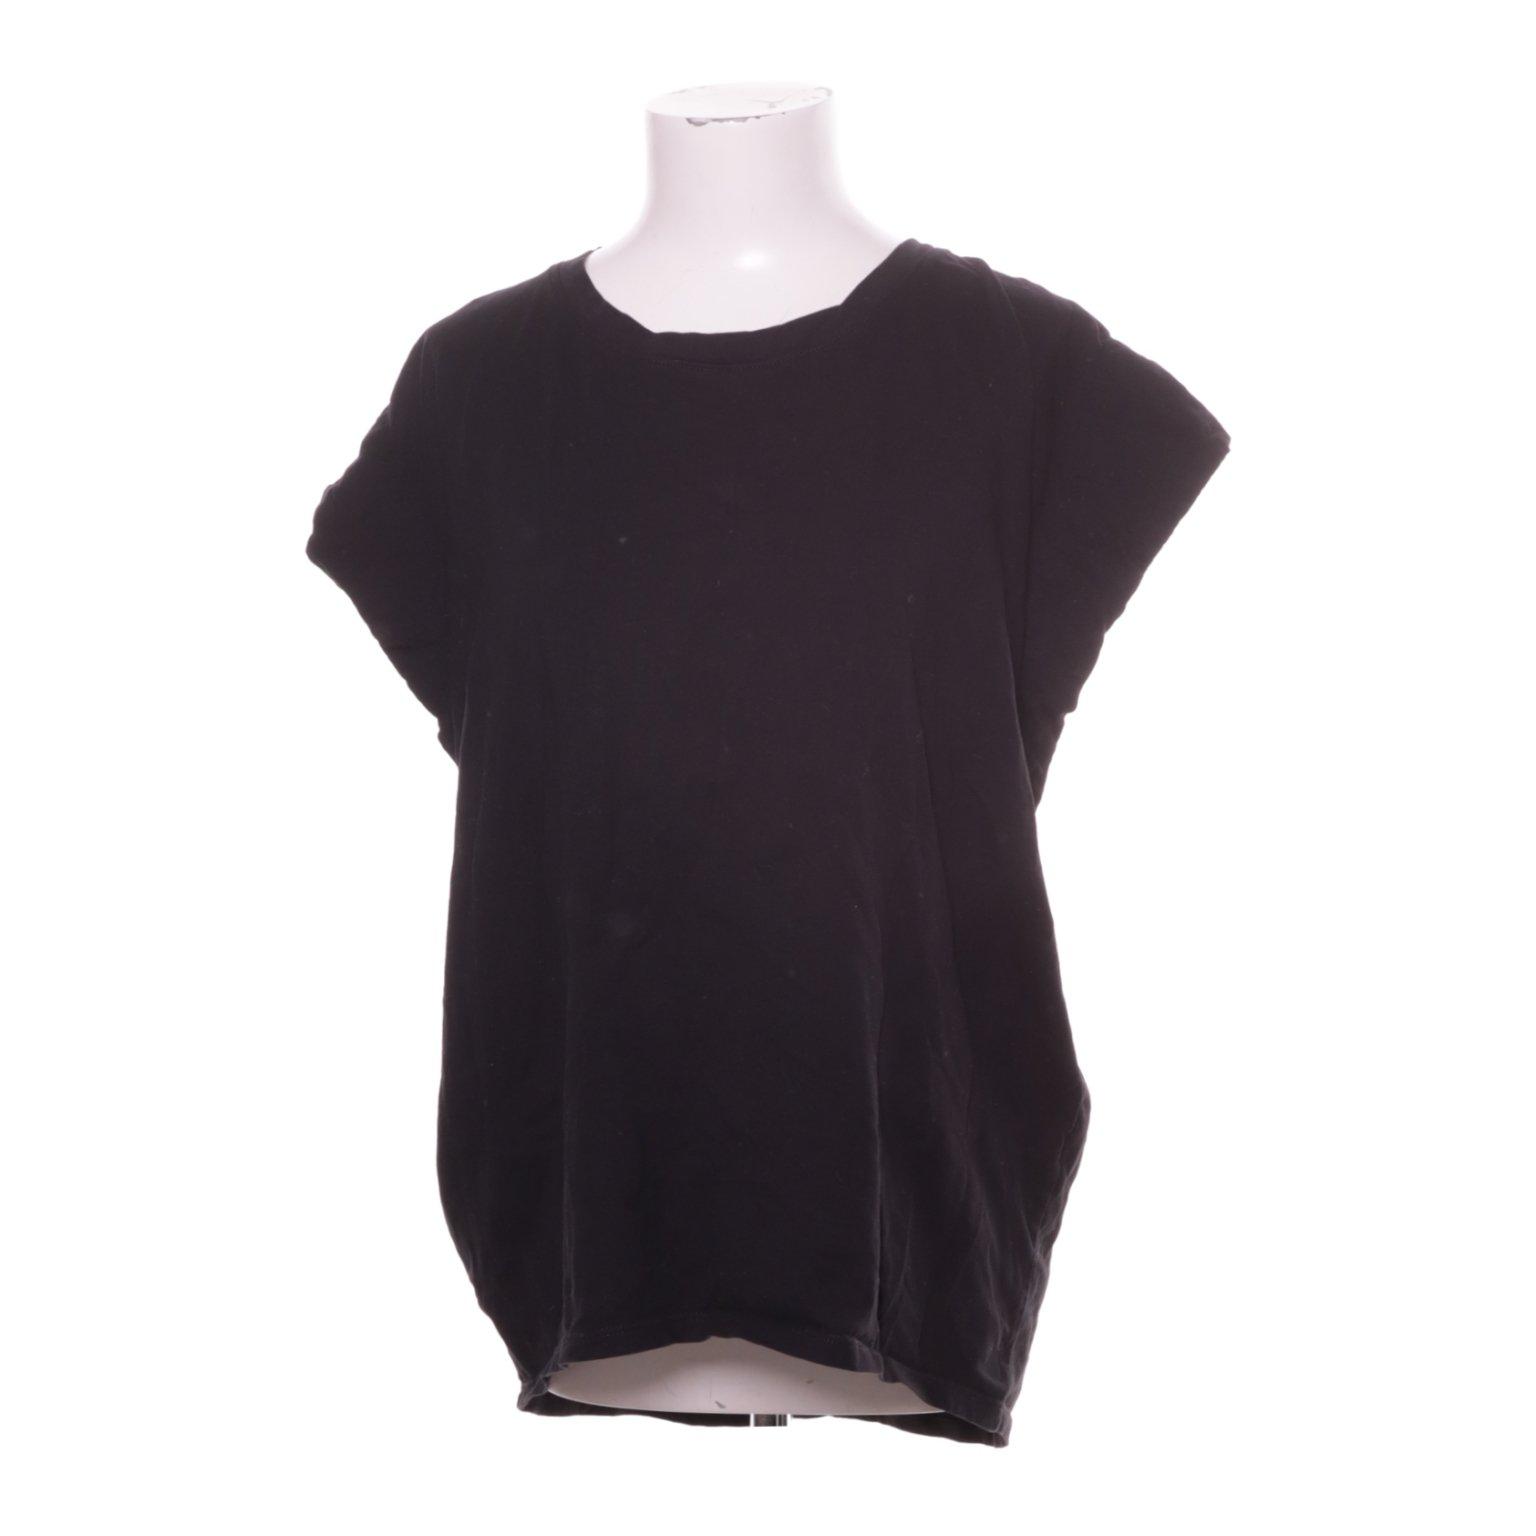 Zara Woman / Basic Collection, T-shirt, Strl: L, Svart, Bomull